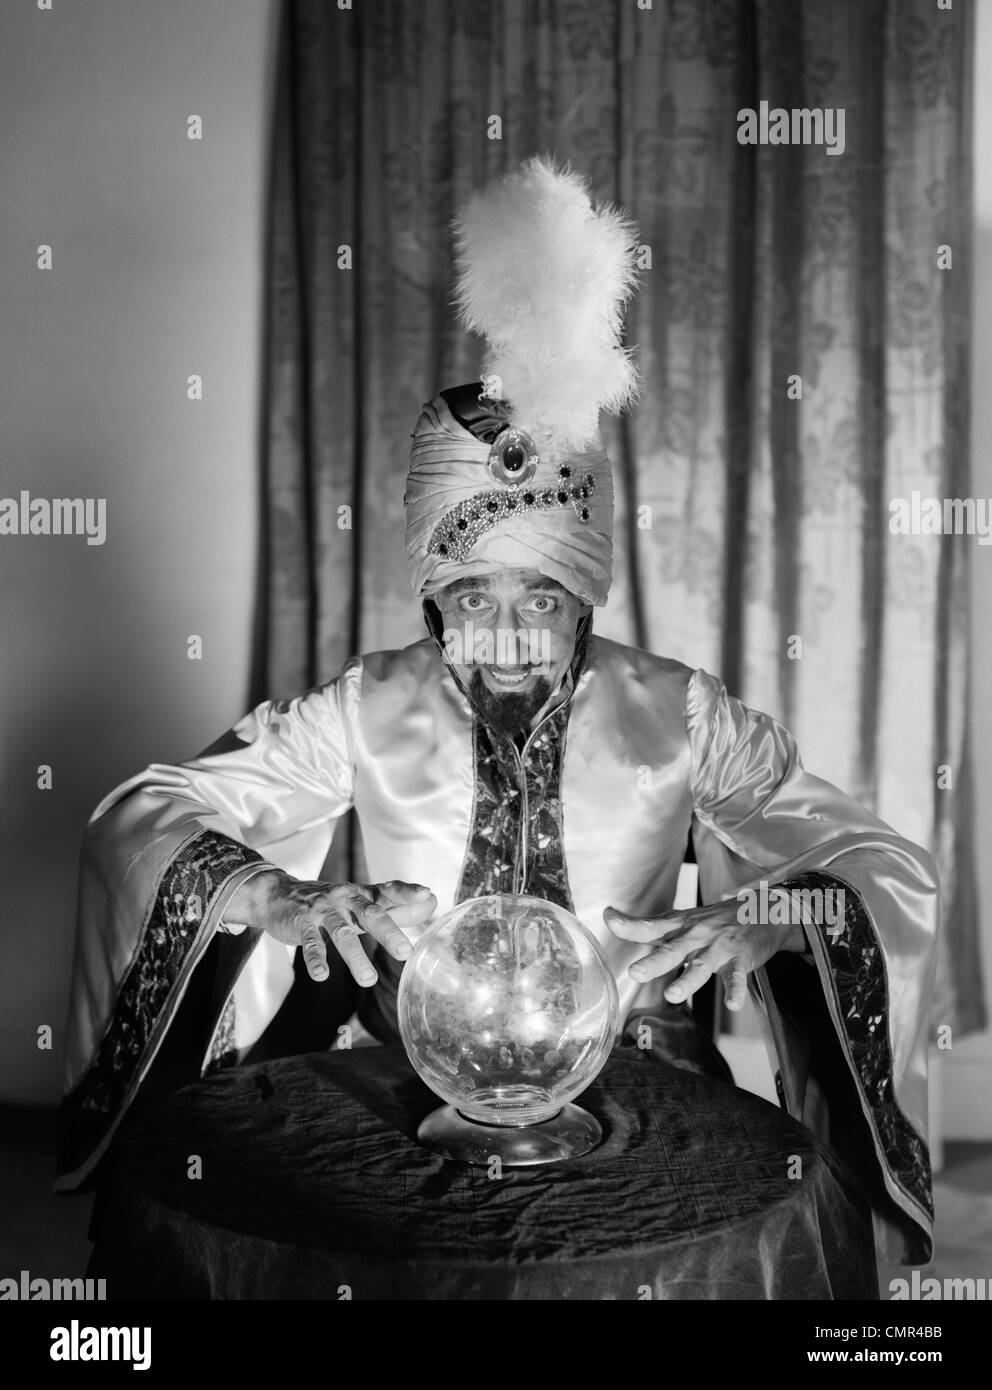 Fortune Teller Booth Halloween Craft: Fortune Teller Vintage Crystal Ball Stock Photos & Fortune